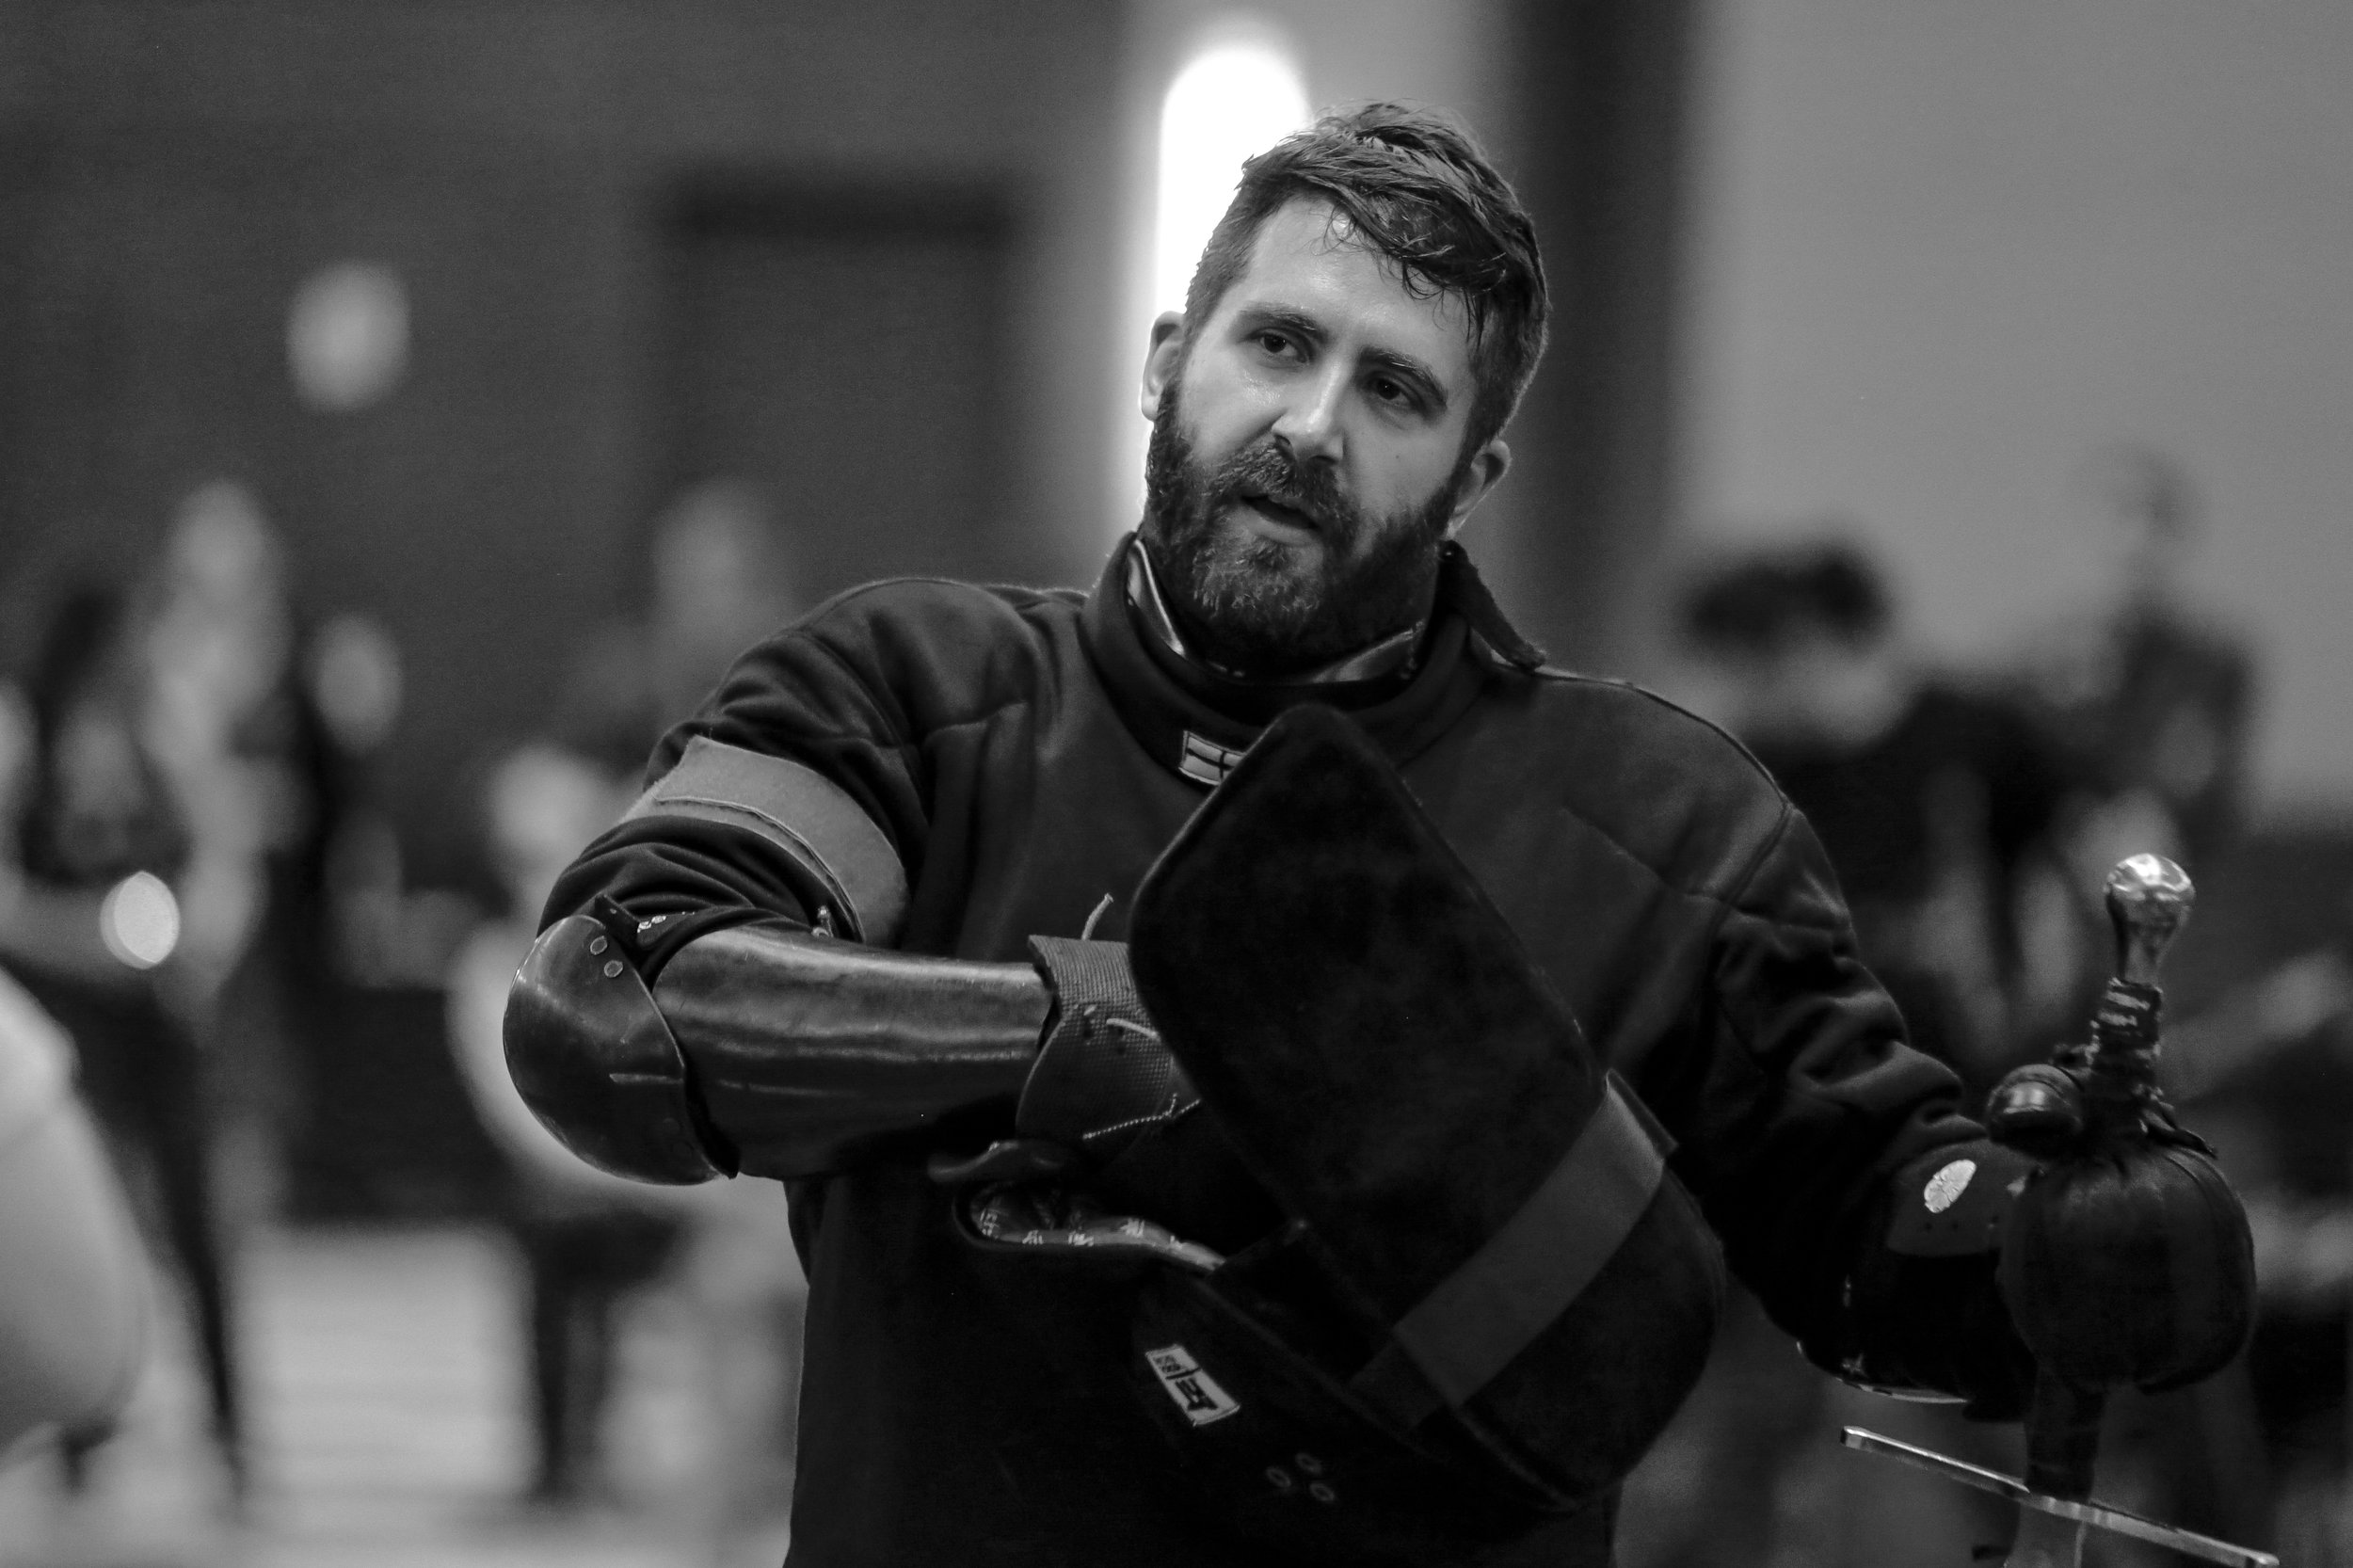 Jason after winning bronze in the 100 fencer tier b steel longsword tournament at Longpoint.